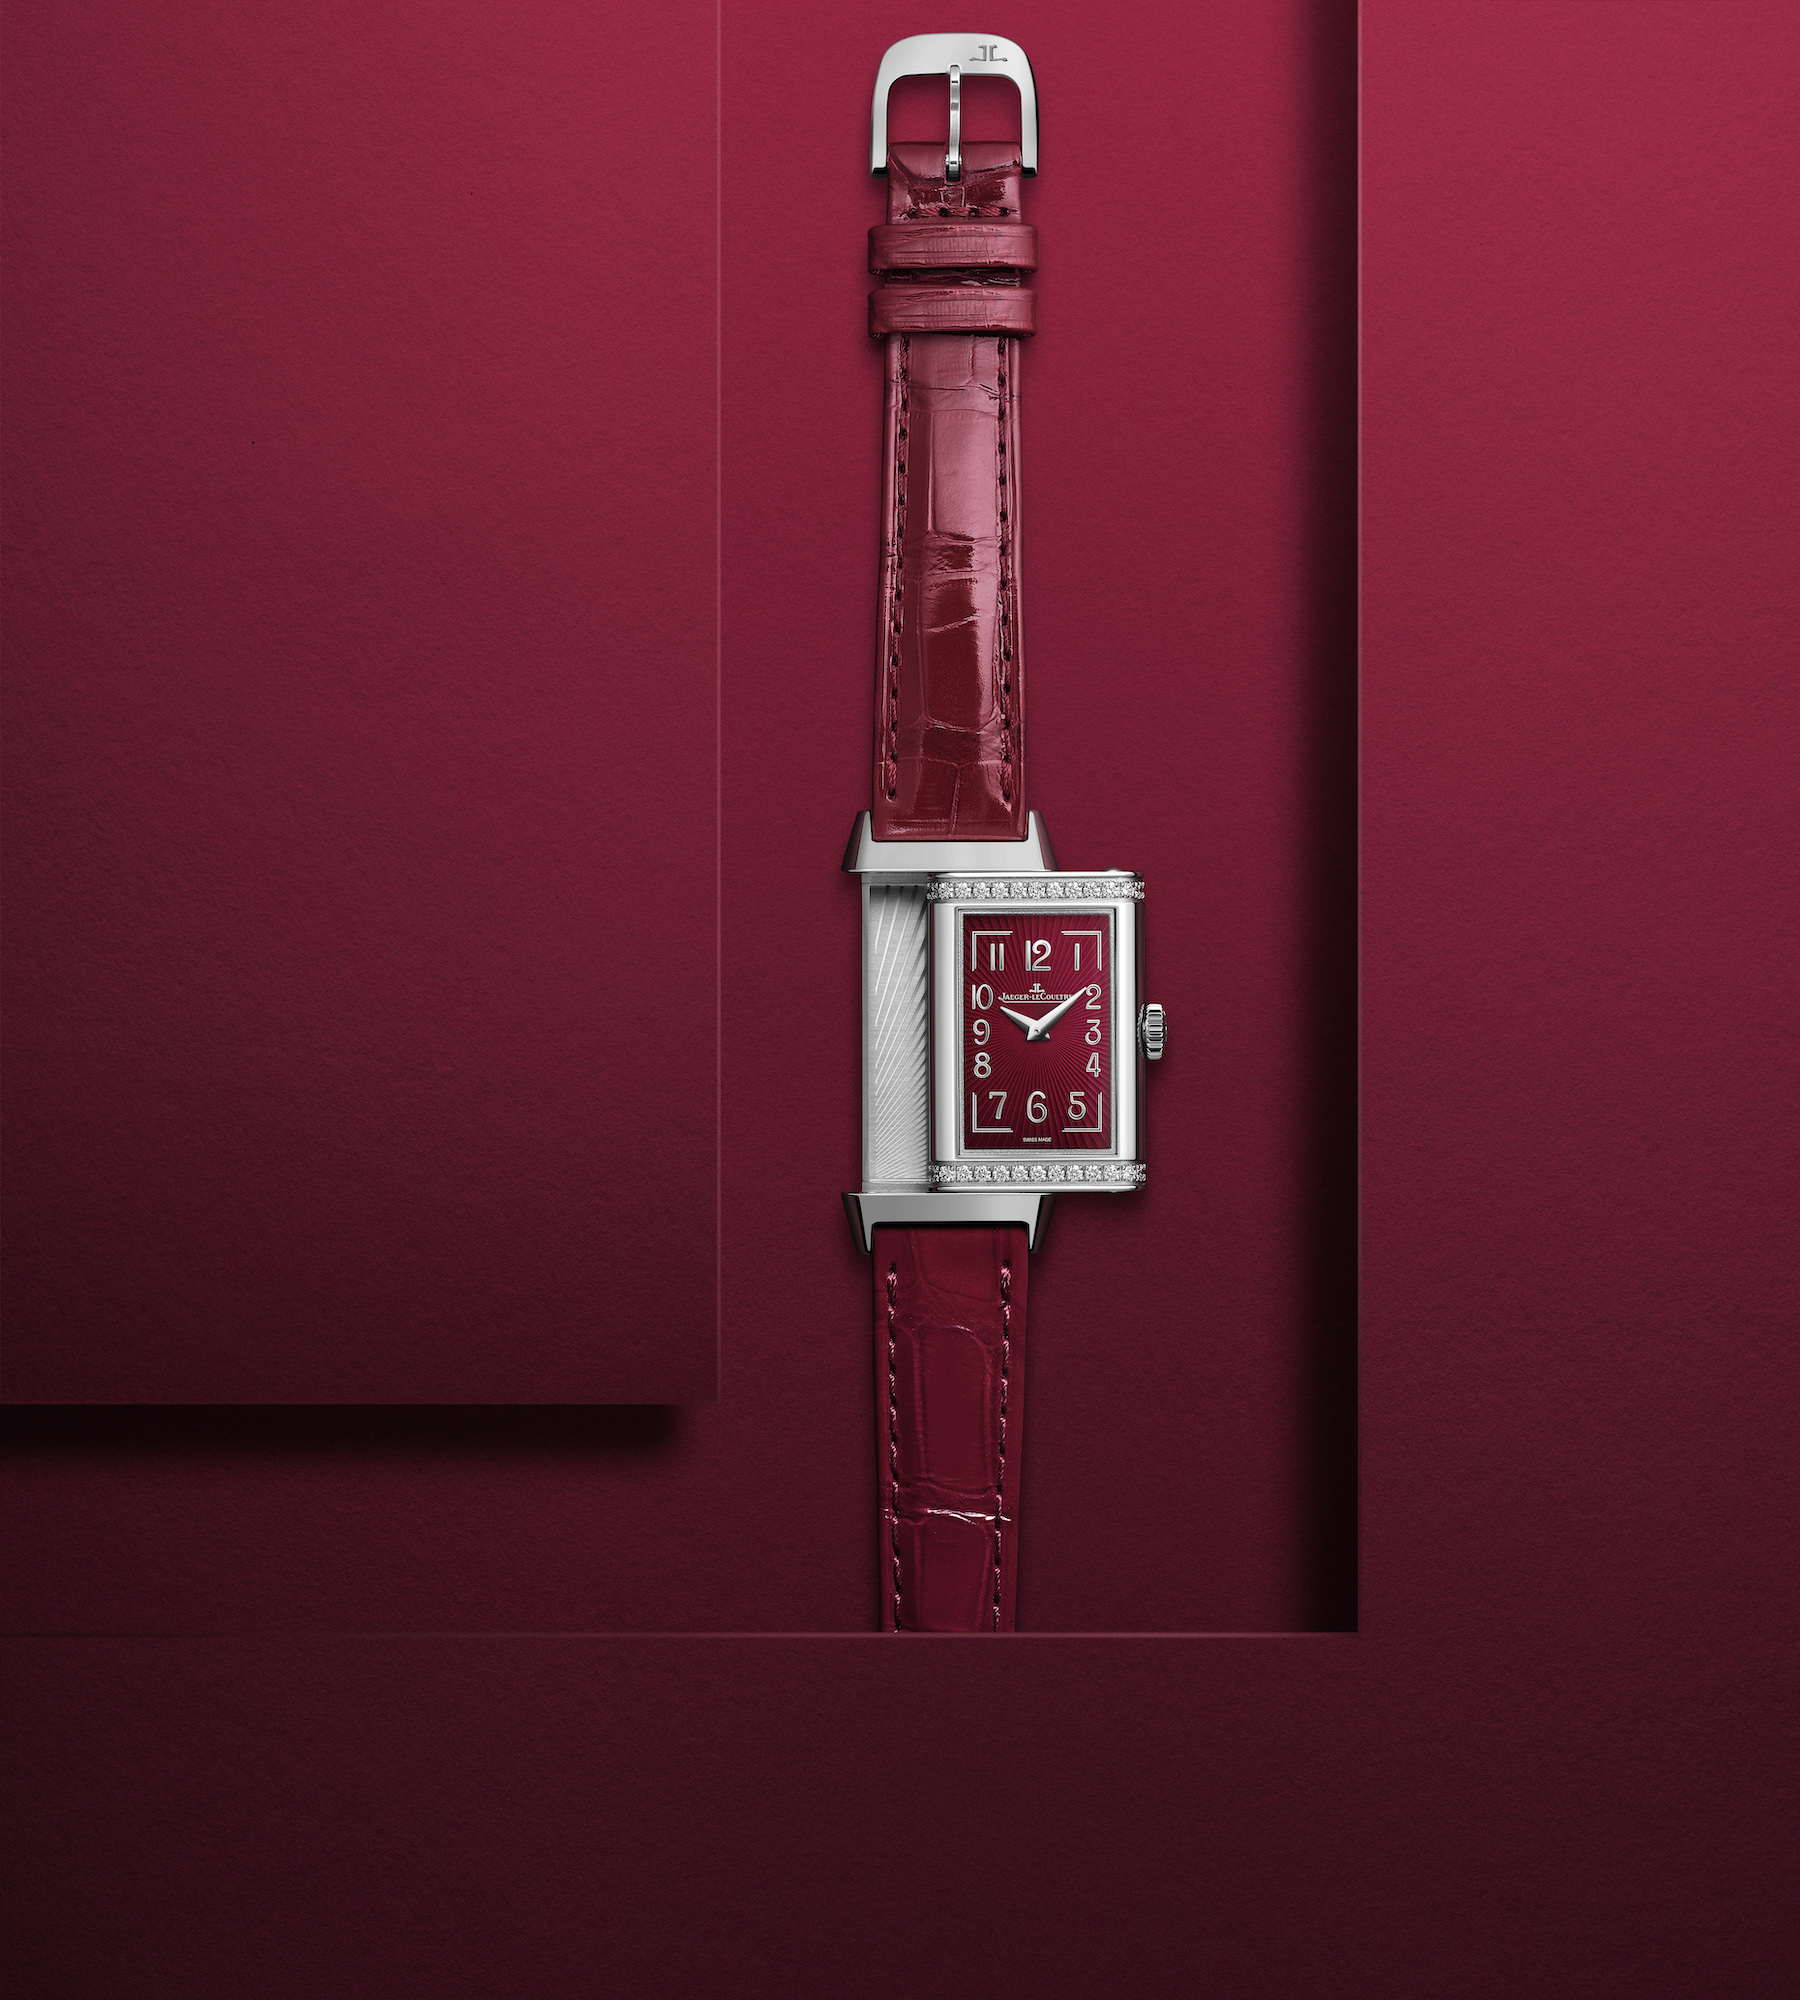 Jaeger-LeCoultre Reverso One q3288560 lifestyle